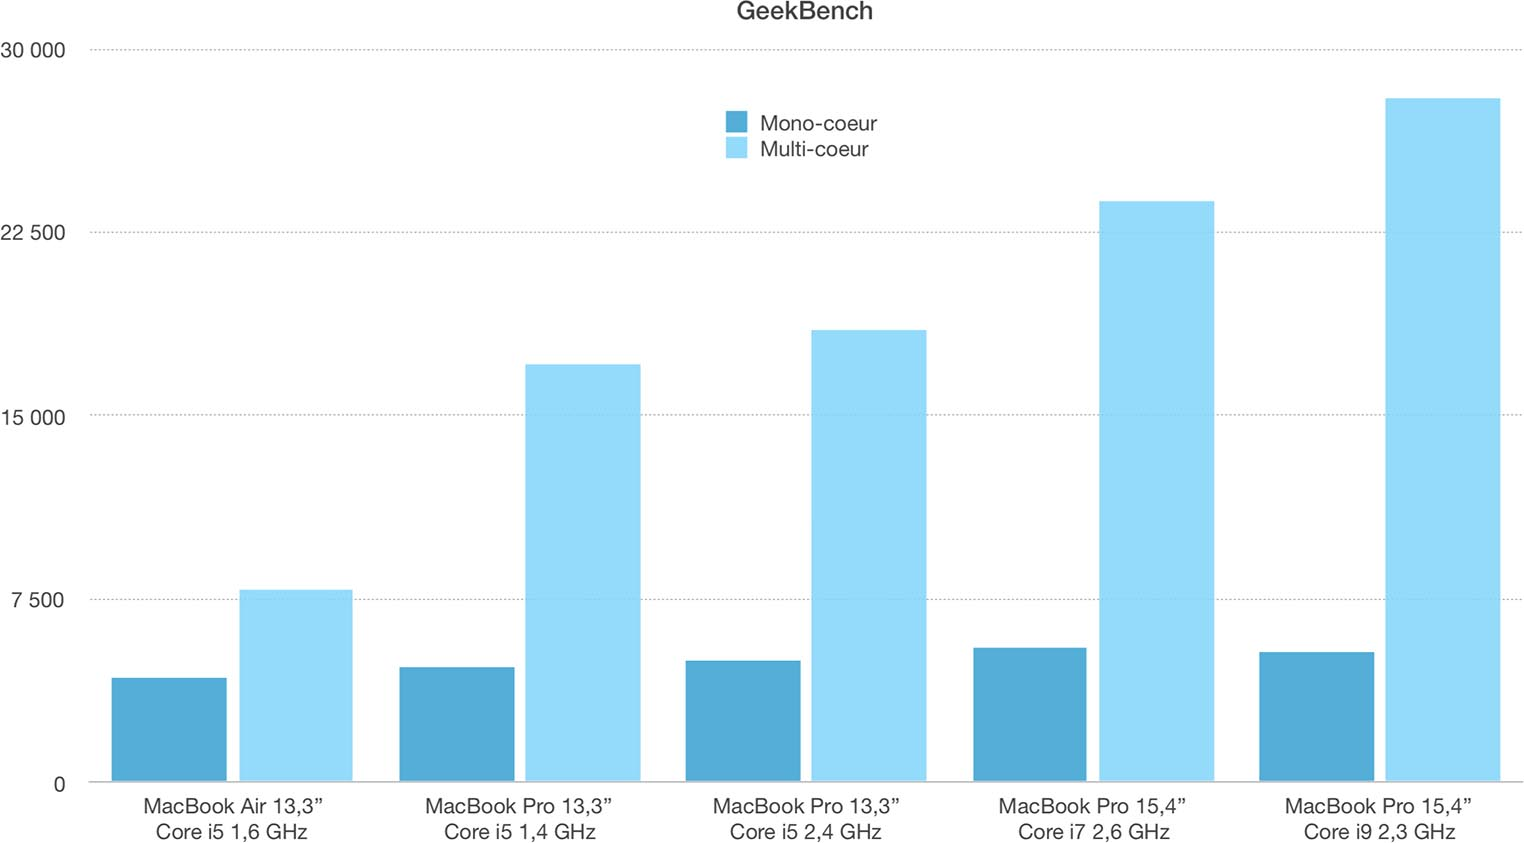 MacBook Pro 2019 Geekbench